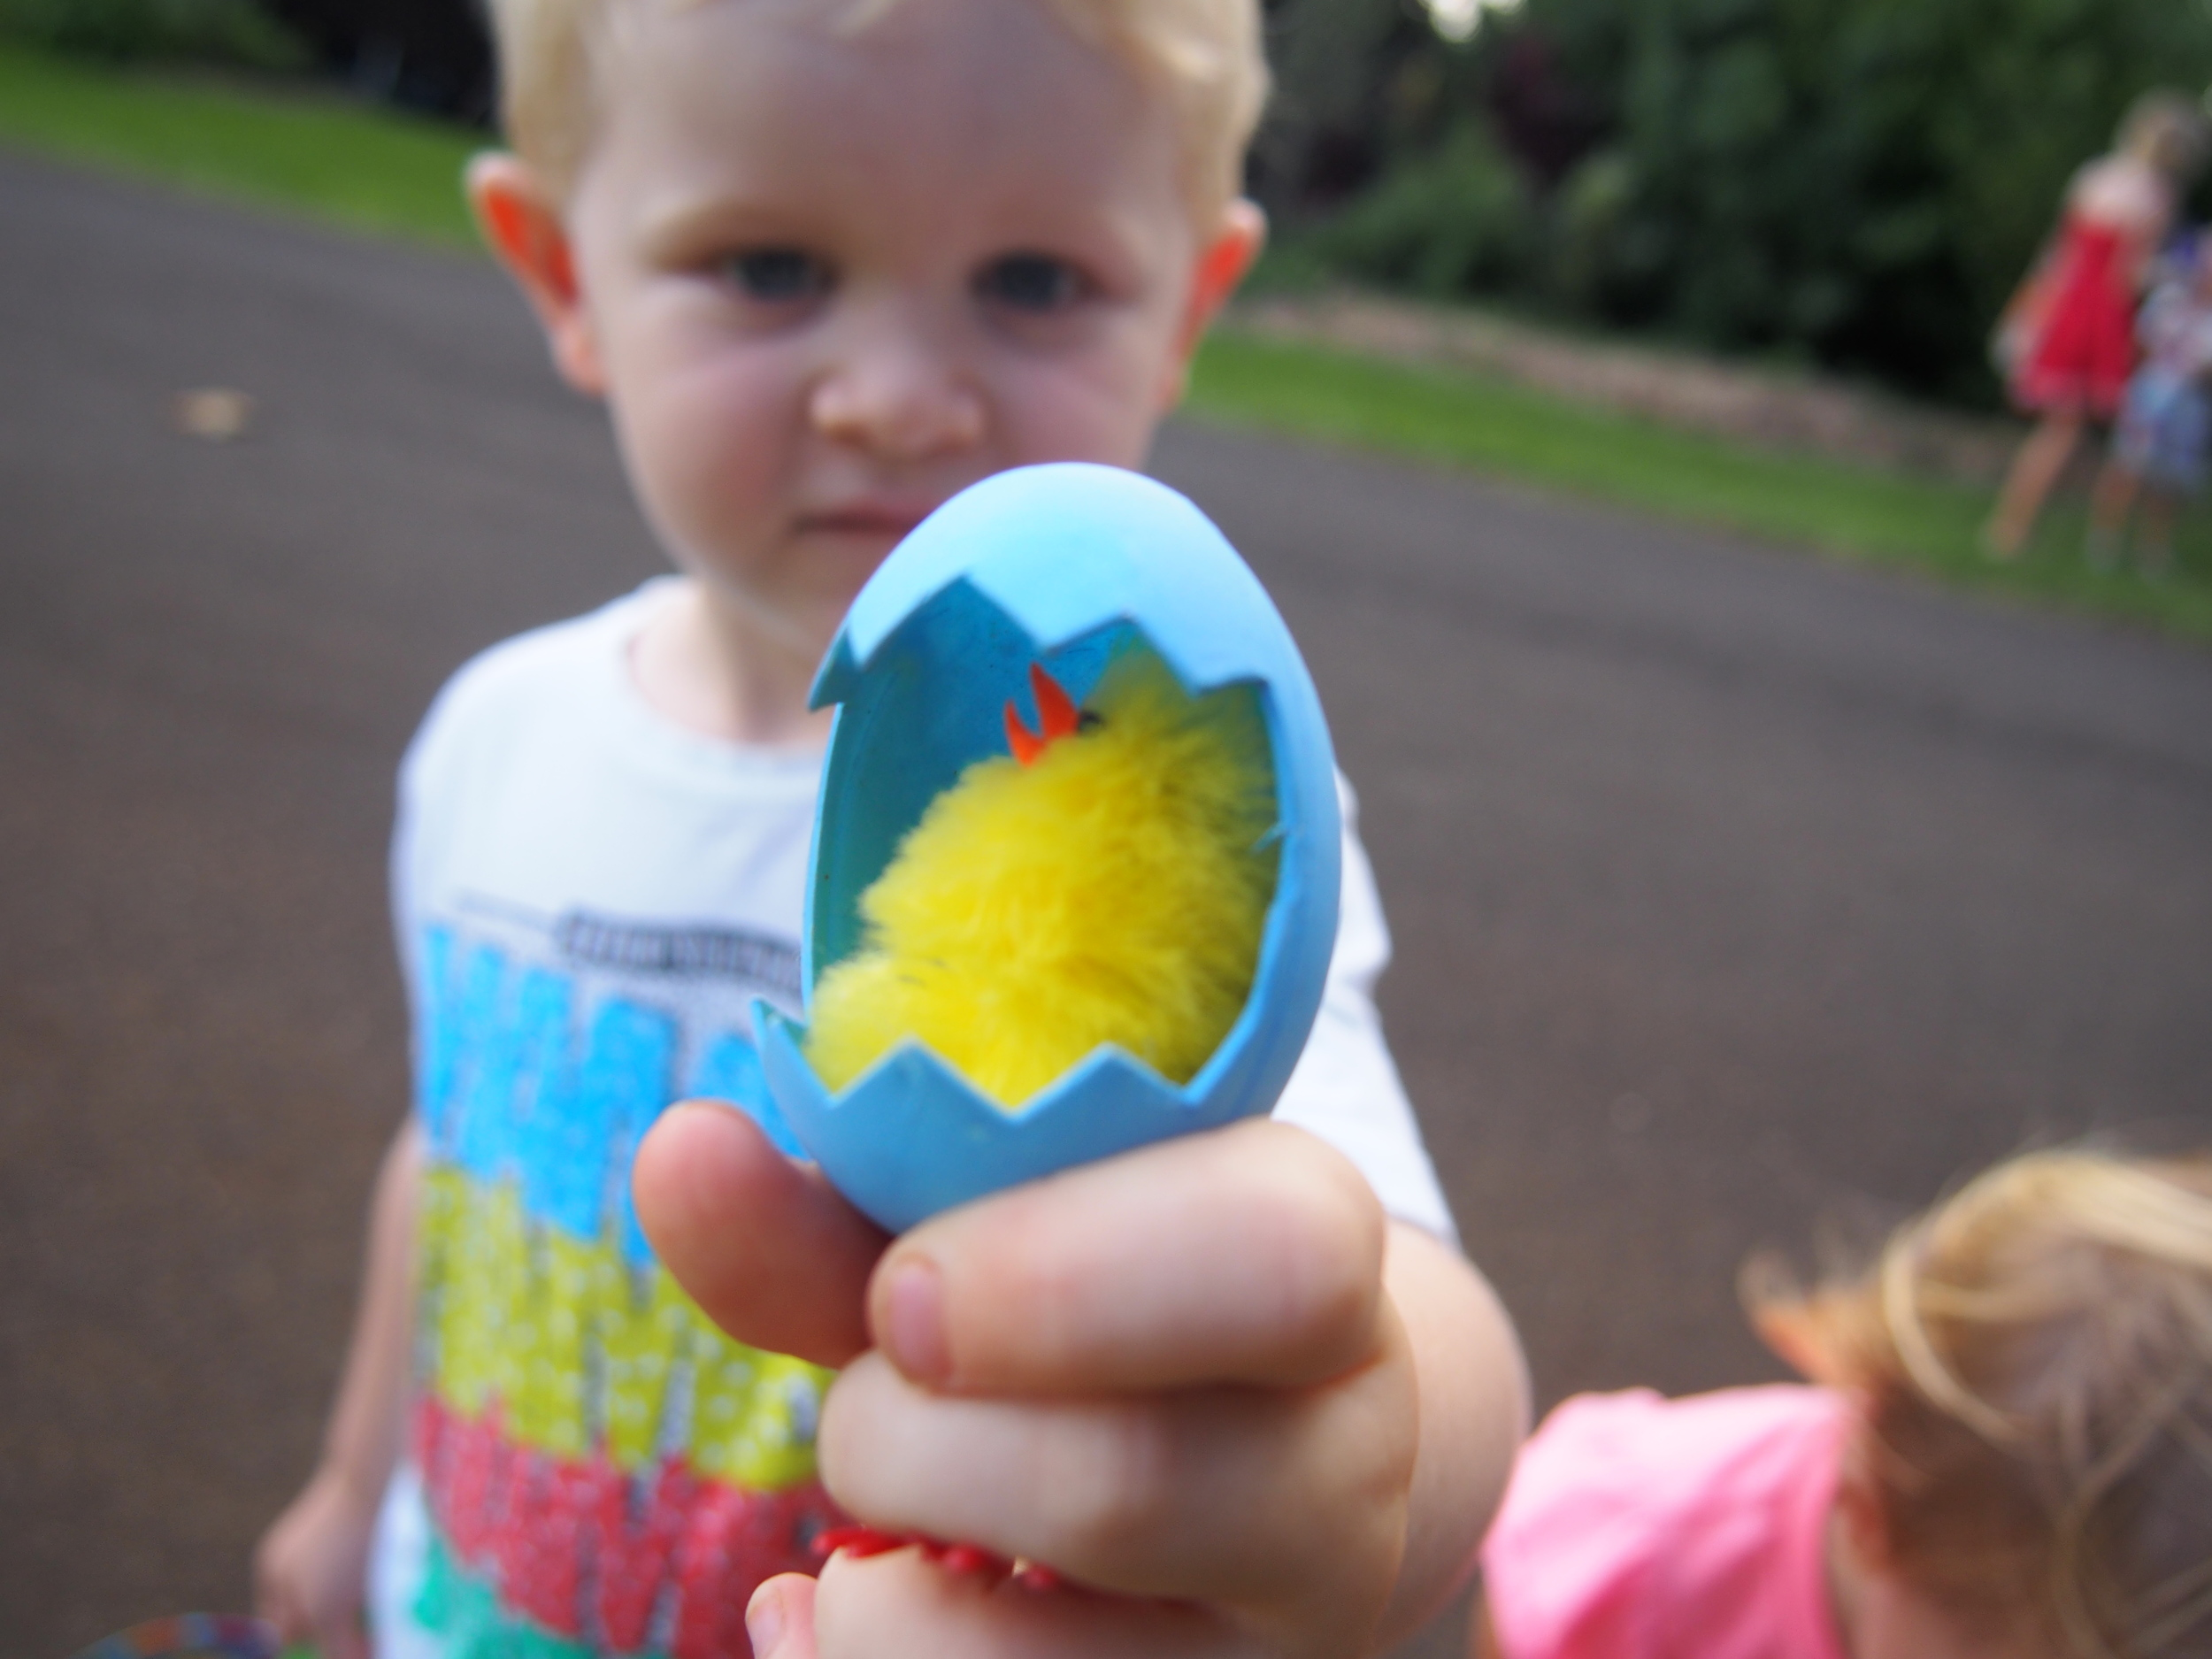 Kids searched for chocolate amongst the verge edibles but found chickens instead!